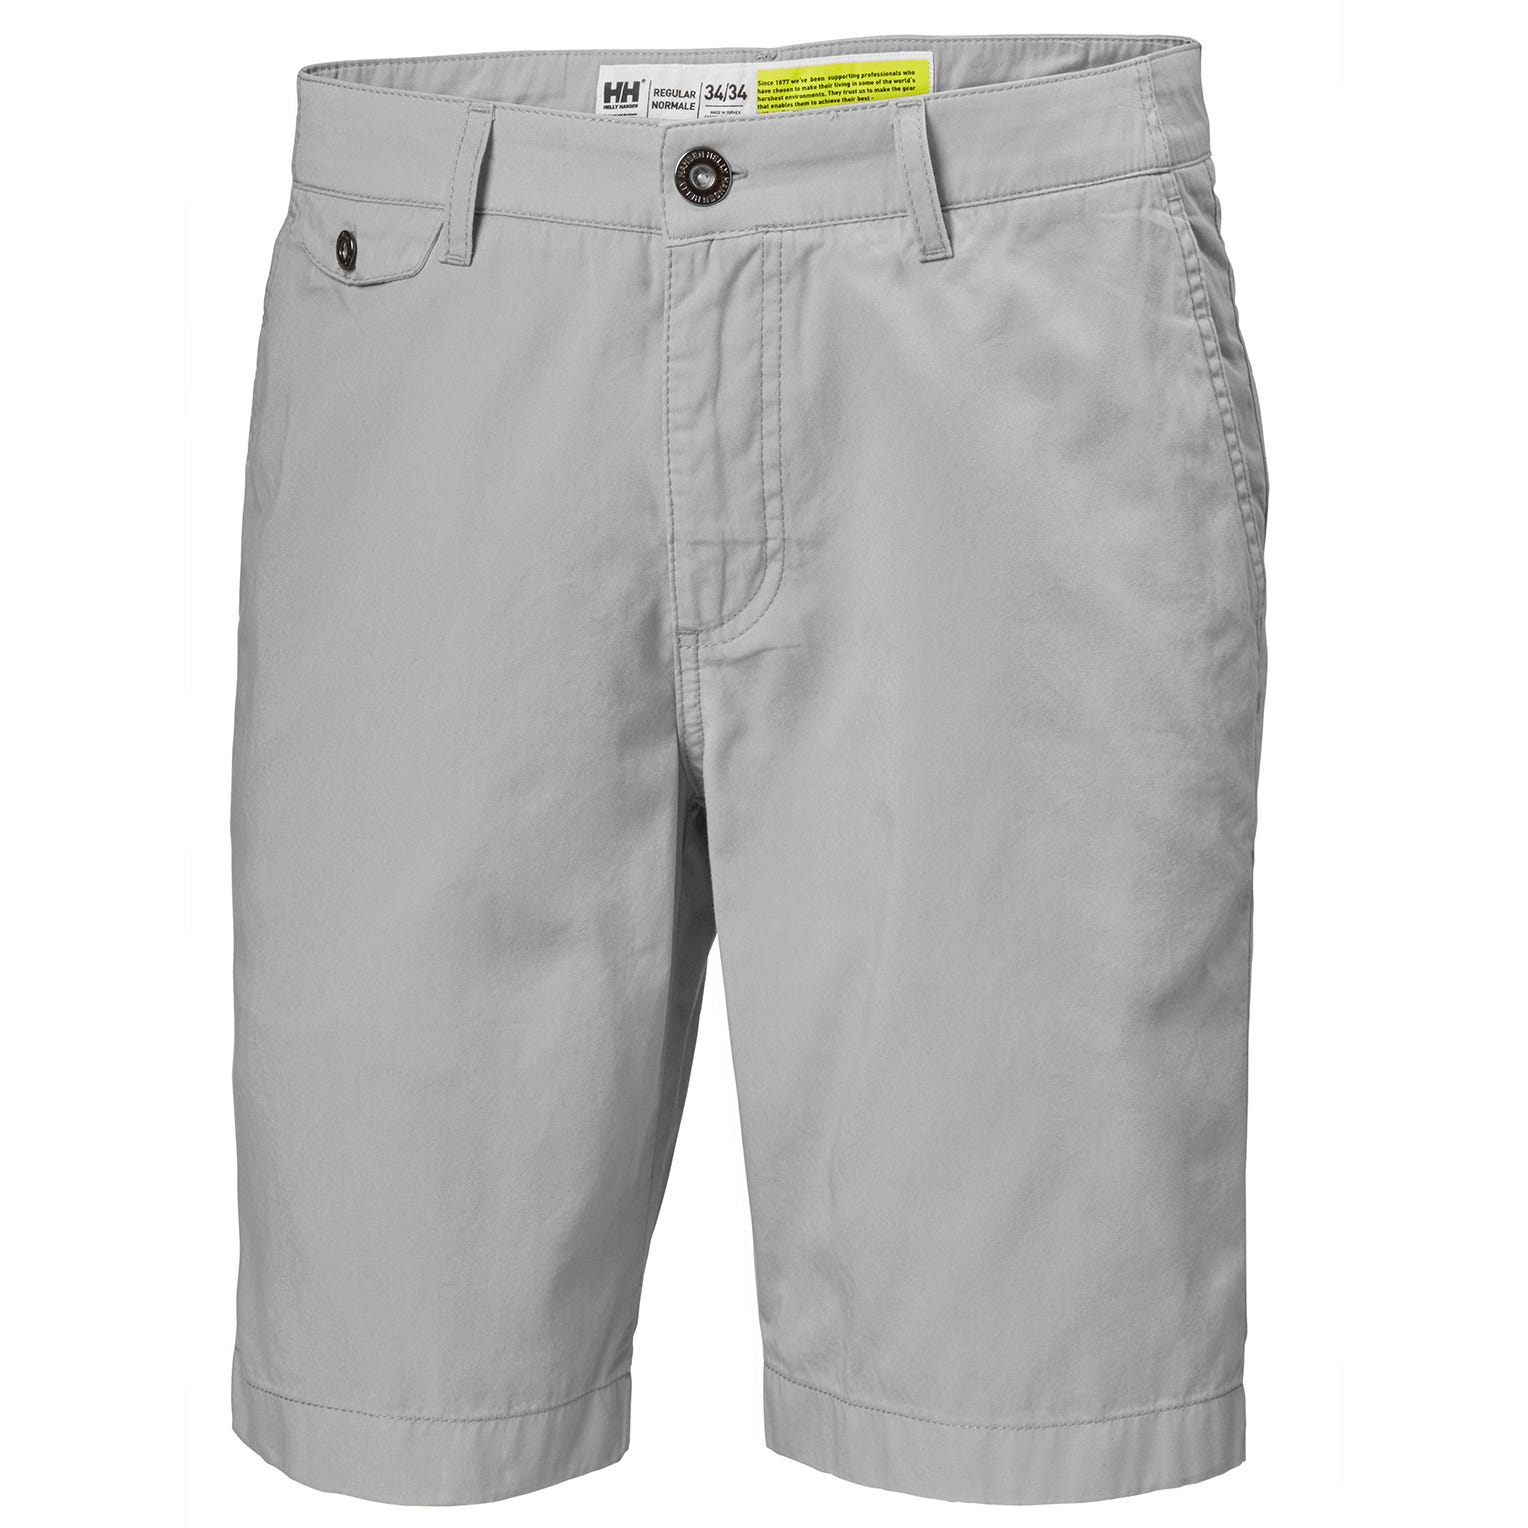 Helly Hansen Mens Bermuda Shorts 10 Sailing Trouser Grey 34